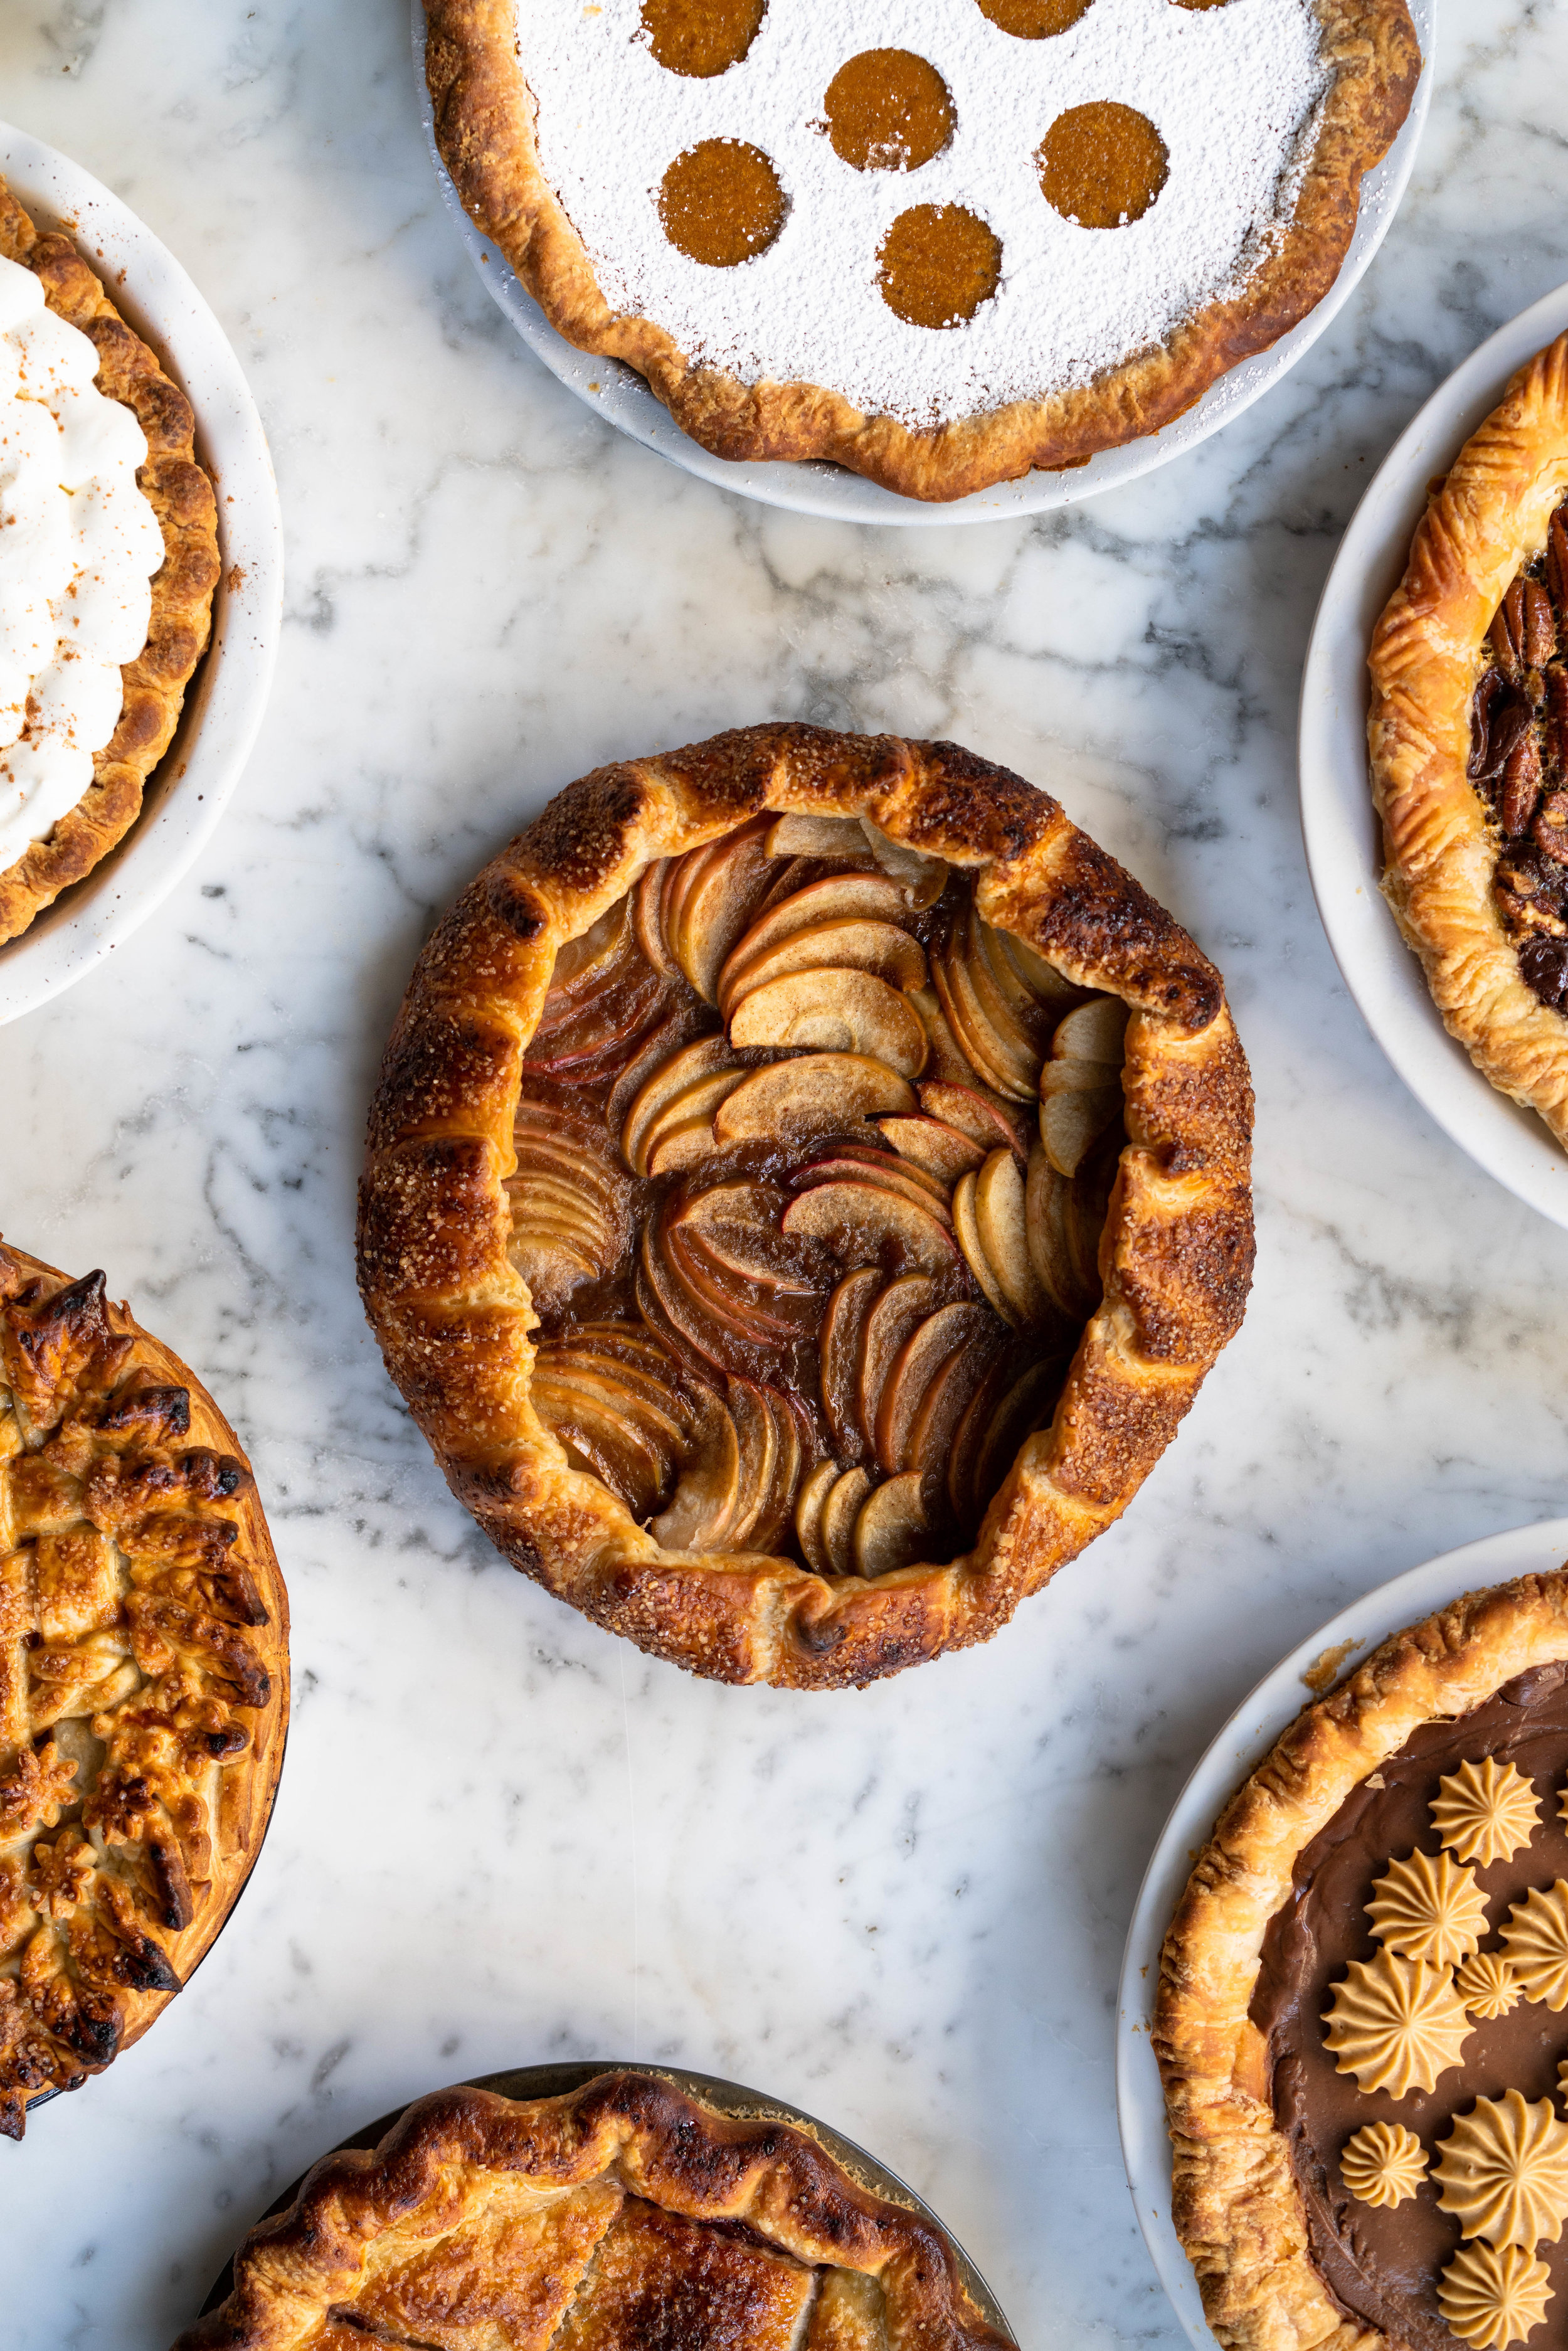 Nine of the Best Thanksgiving Pie Recipes: the Ultimate Pie Roundup Post! This roundup post lists some of the best thanksgiving pie recipes - there is literally something for everyone. Make just one or mix and match for the ultimate thanksgiving pie spread. #thanksgiving #pierecipes #roundup